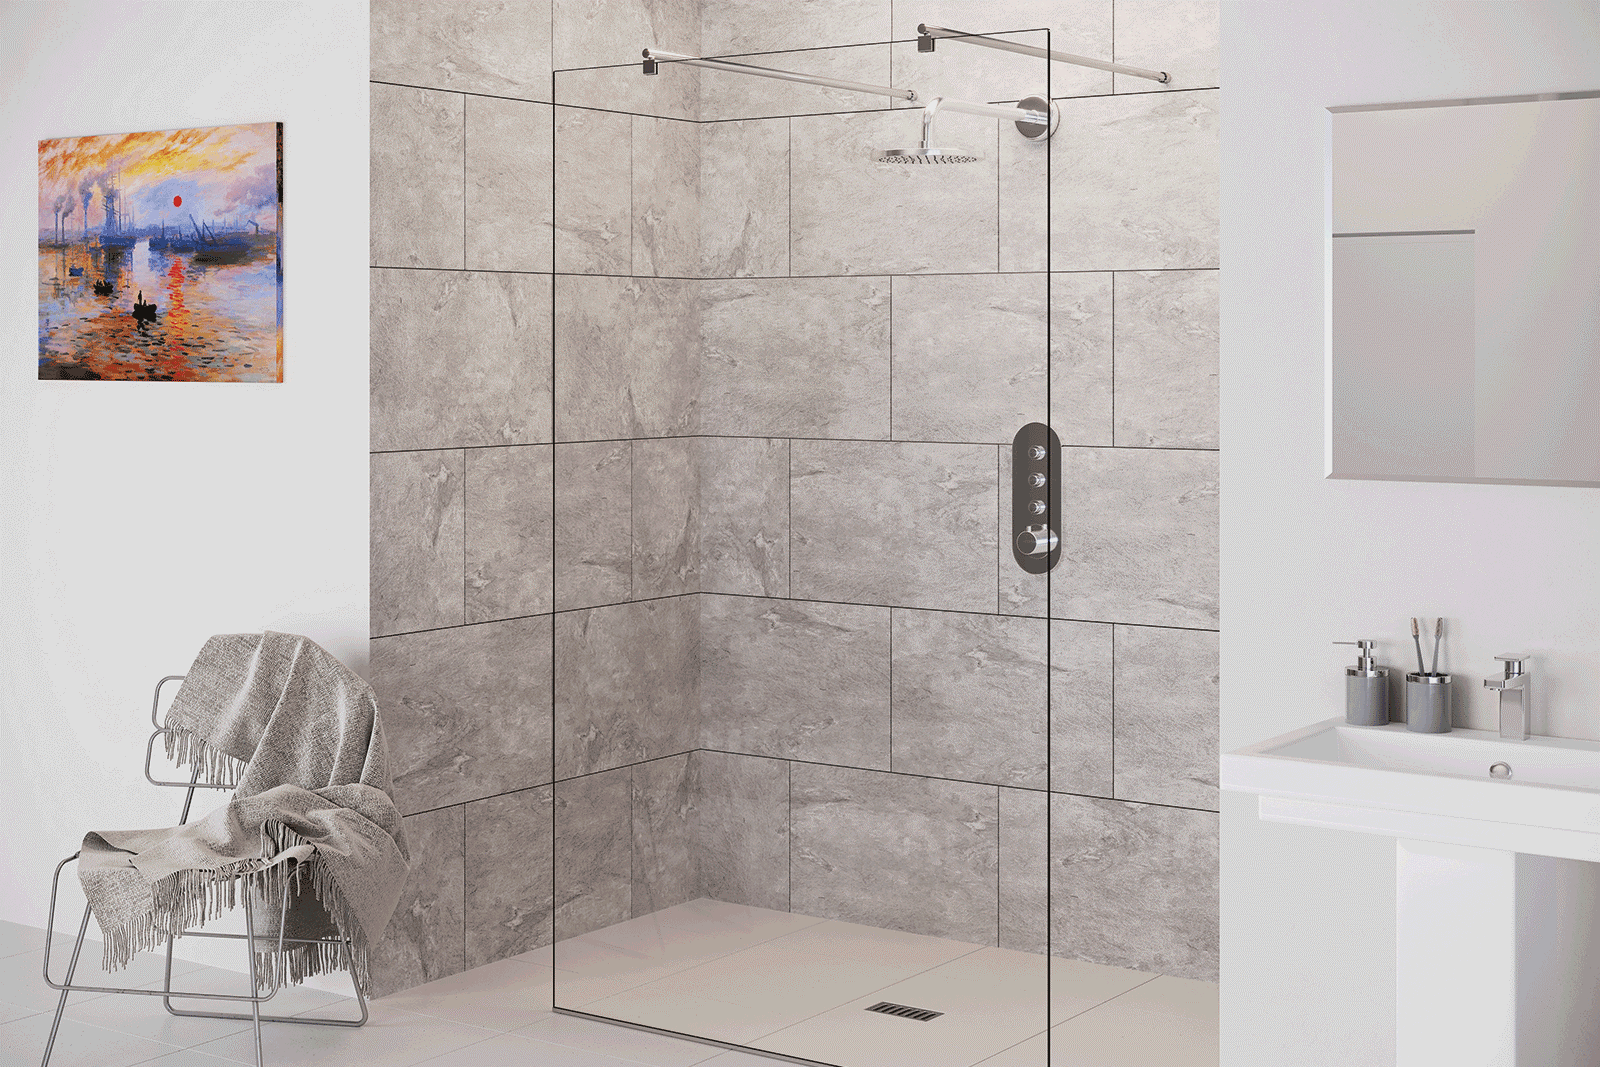 Flair Showers Chianti wetroom shower panel available from BATHLINE Bathrooms.